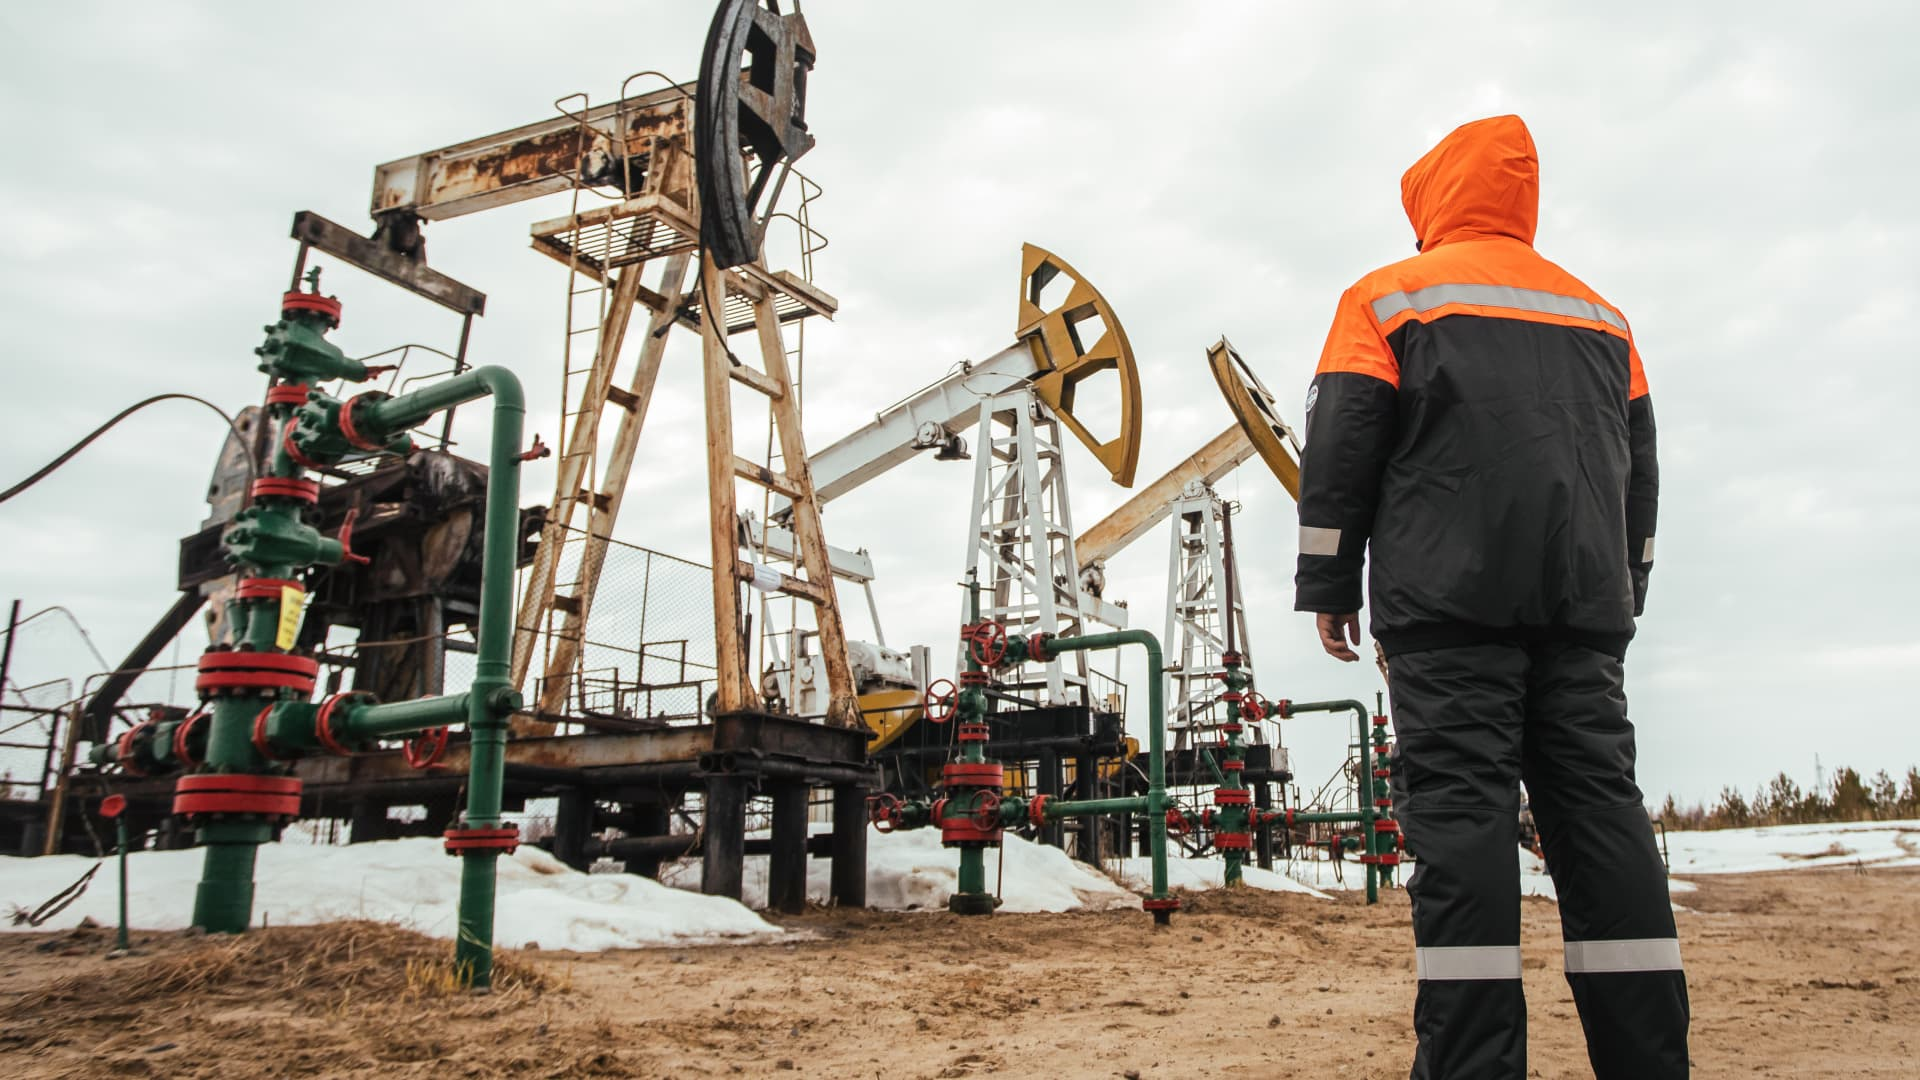 A Surgutneftegas worker near pumpjacks in Surgut Region of the Khanty-Mansi Autonomous Area - Yugra, in the West Siberian petroleum basin.